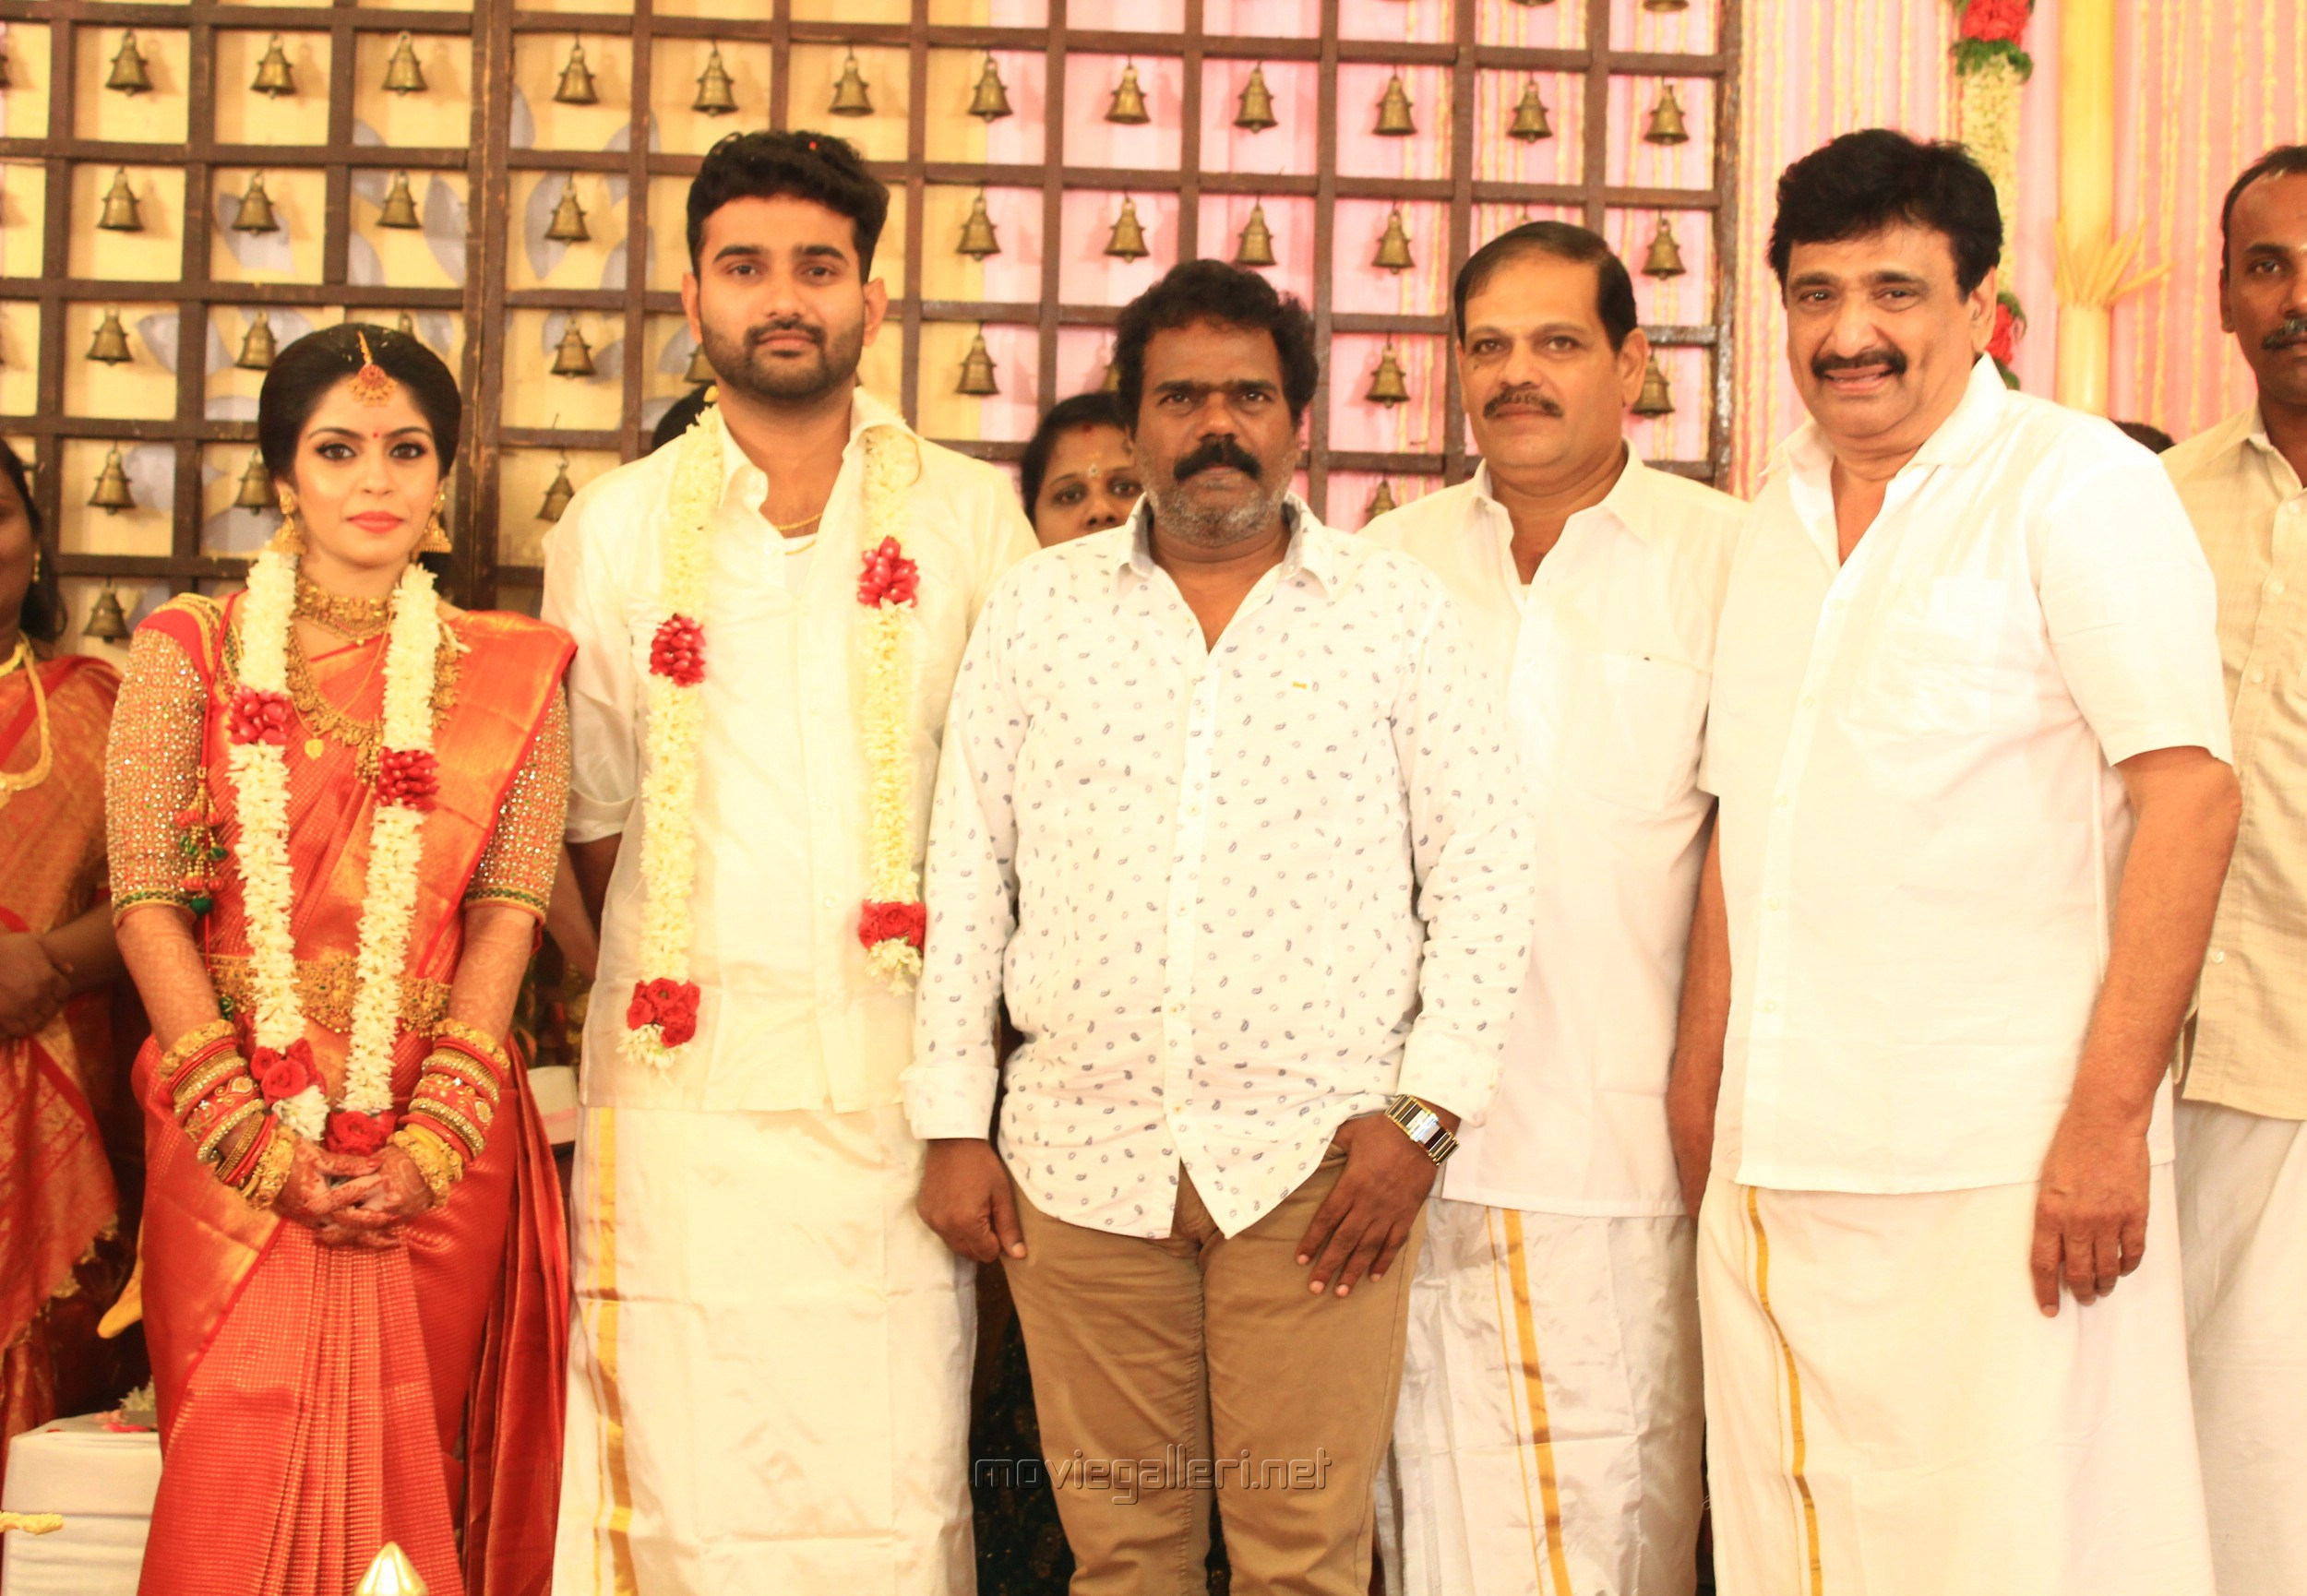 Thangar Bachan @ Ramesh Kanna Son Jashwanth Kannan Priyanka Marriage Photos